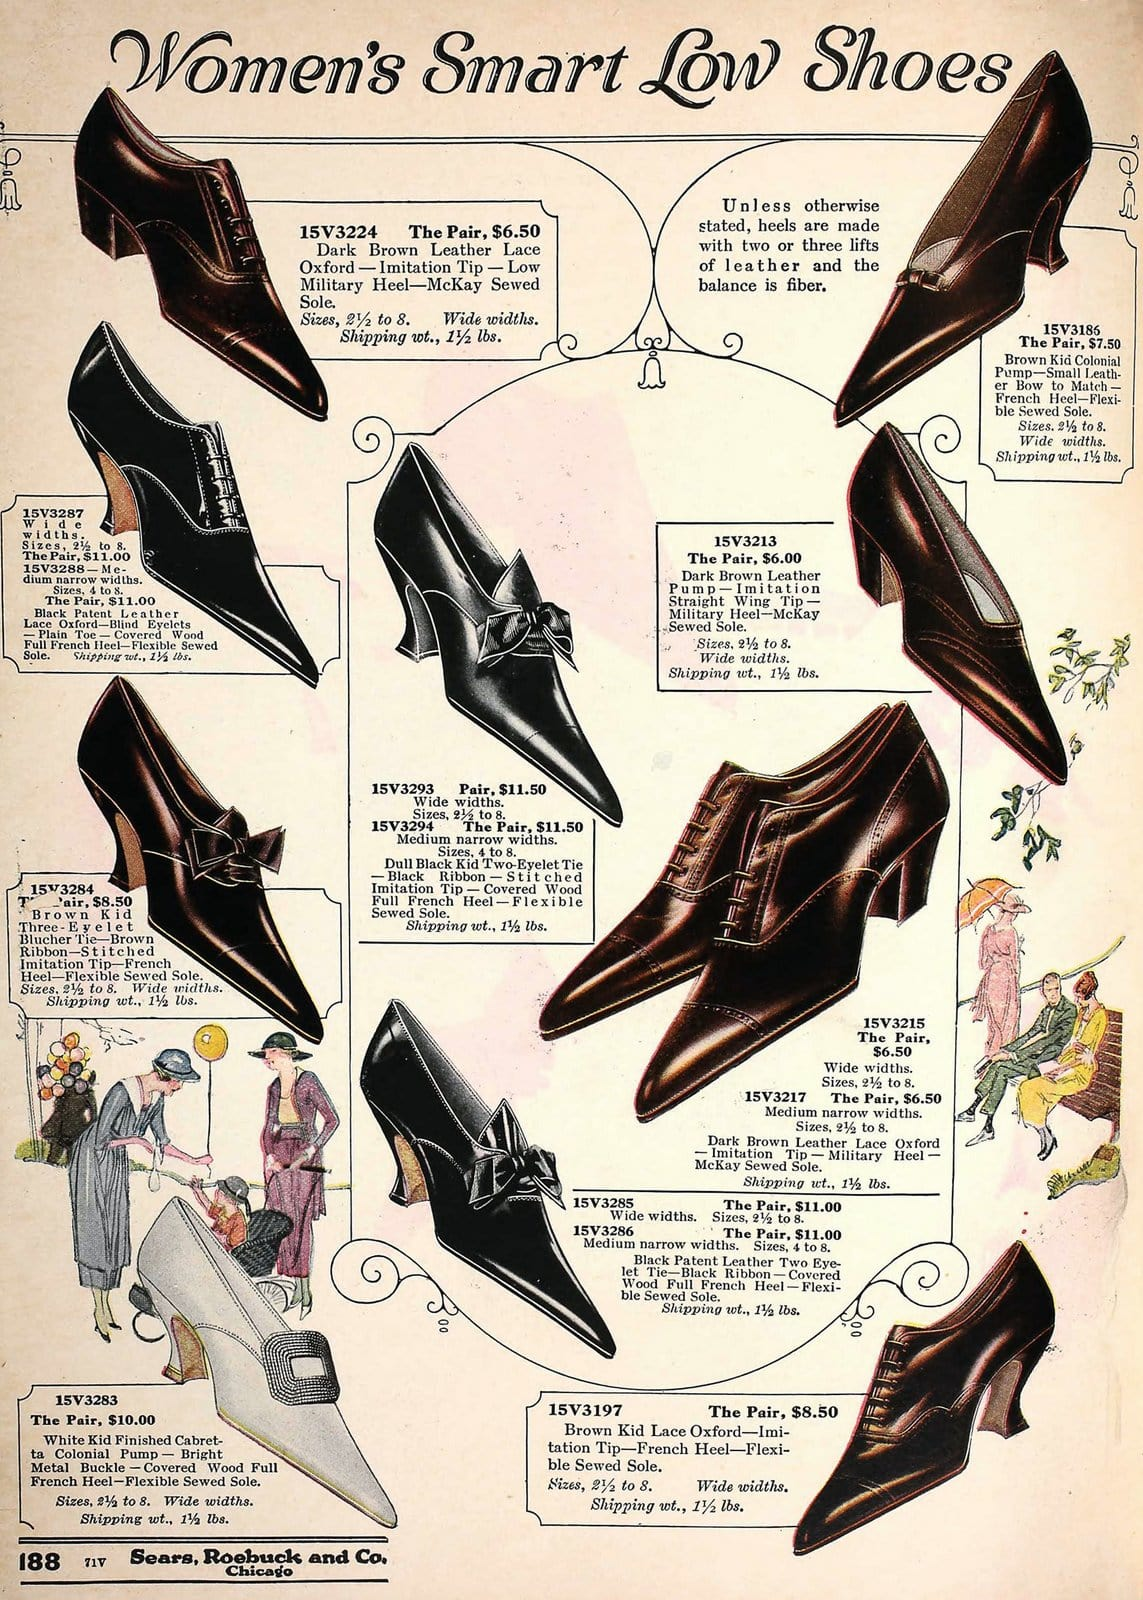 Old-fashioned women's shoes from 1920 (2)